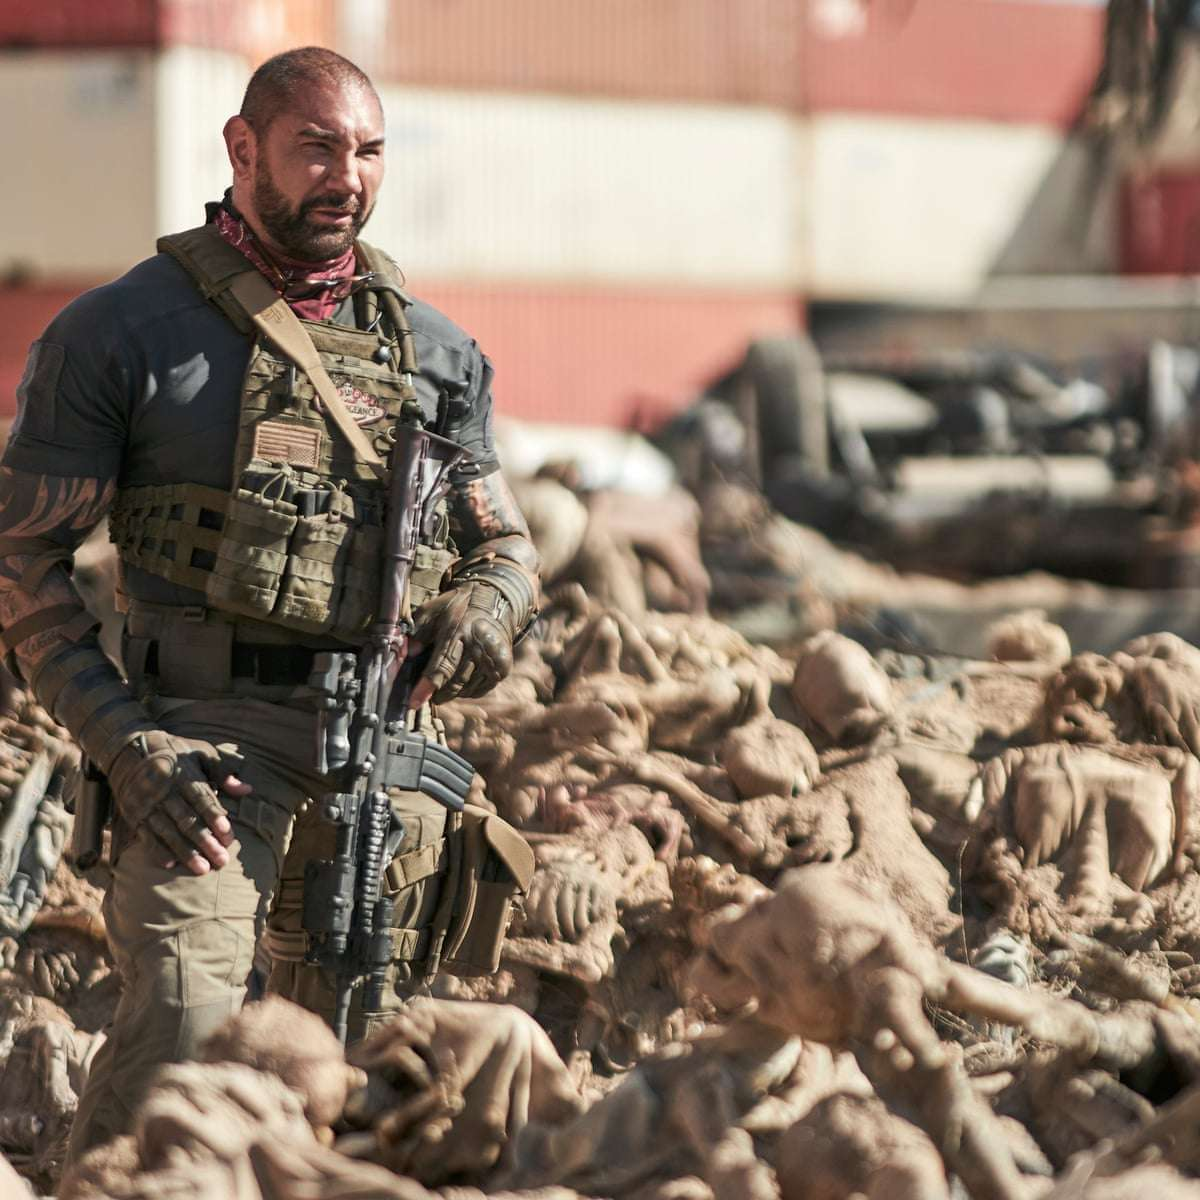 Netflix's New Zombie Movie 'Army of the Dead' Review- Zack Snyder's New Zombie Movie is Worth the Watch